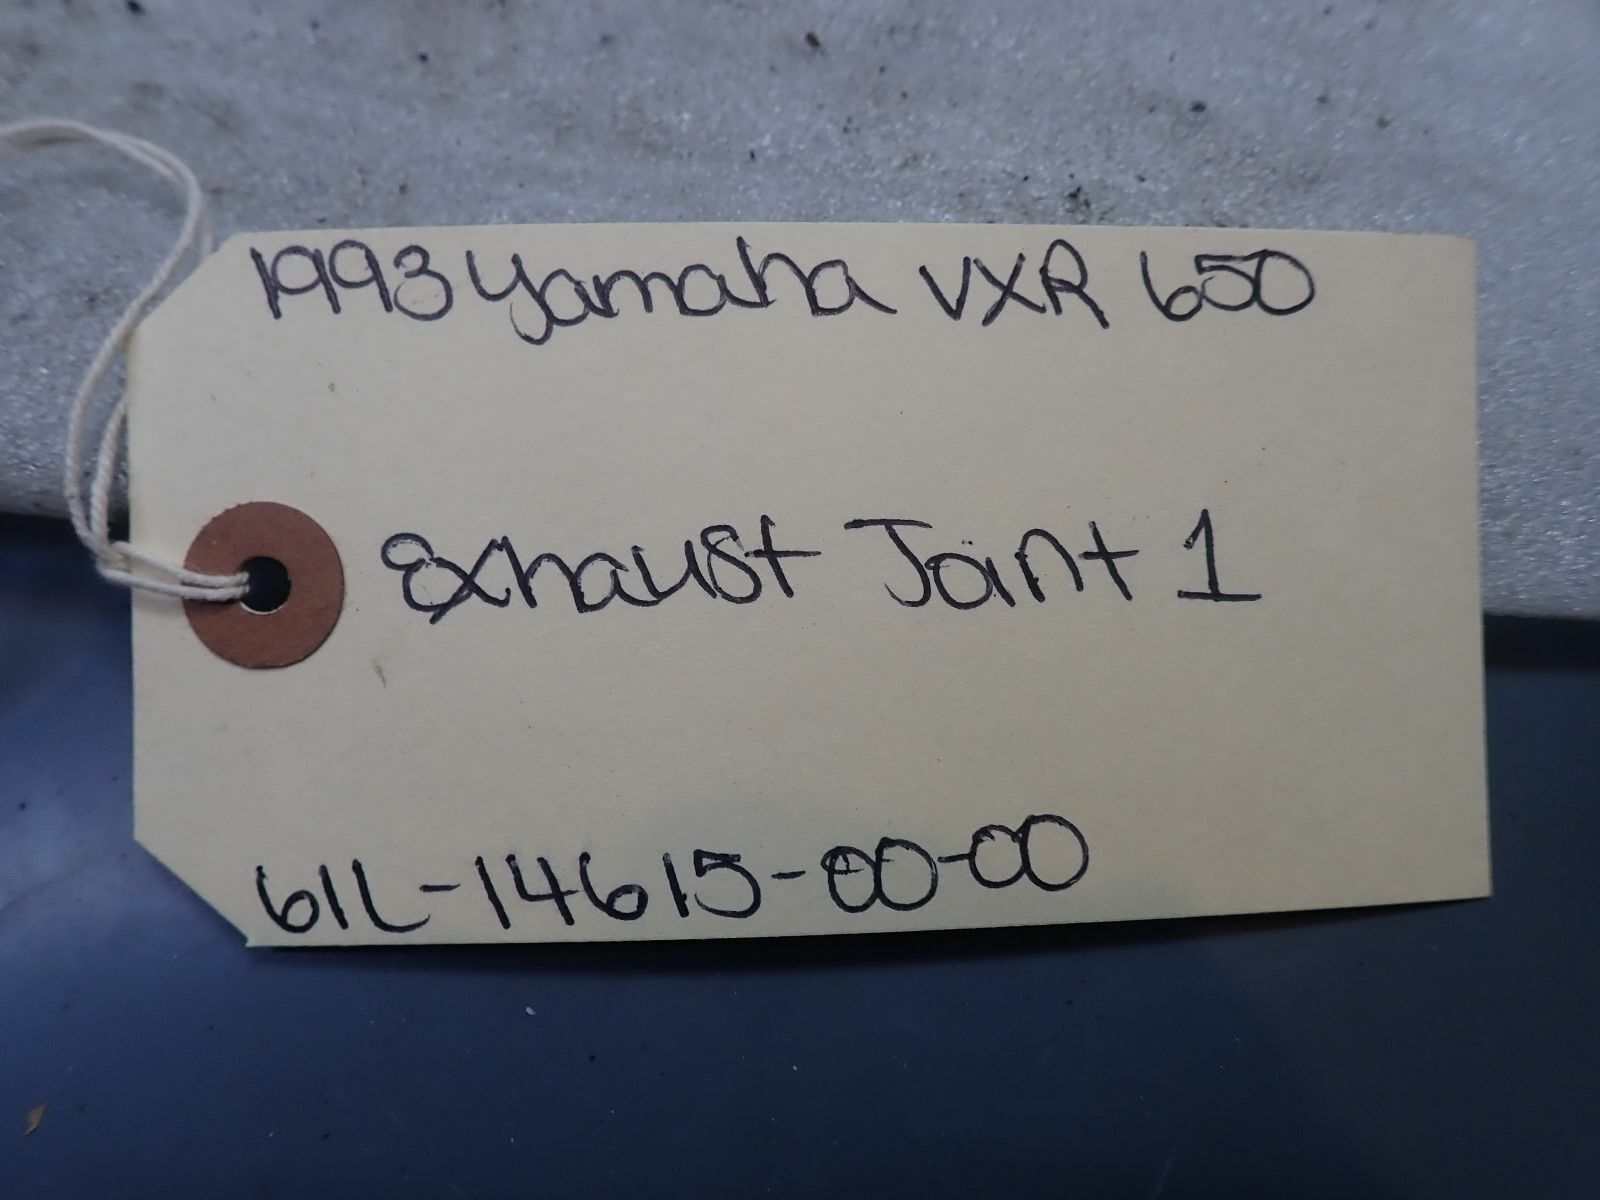 Details about  /V72 Yamaha Wave Runner 3 650 1992 Exhaust Coupler Outer 61L-14615-00-00